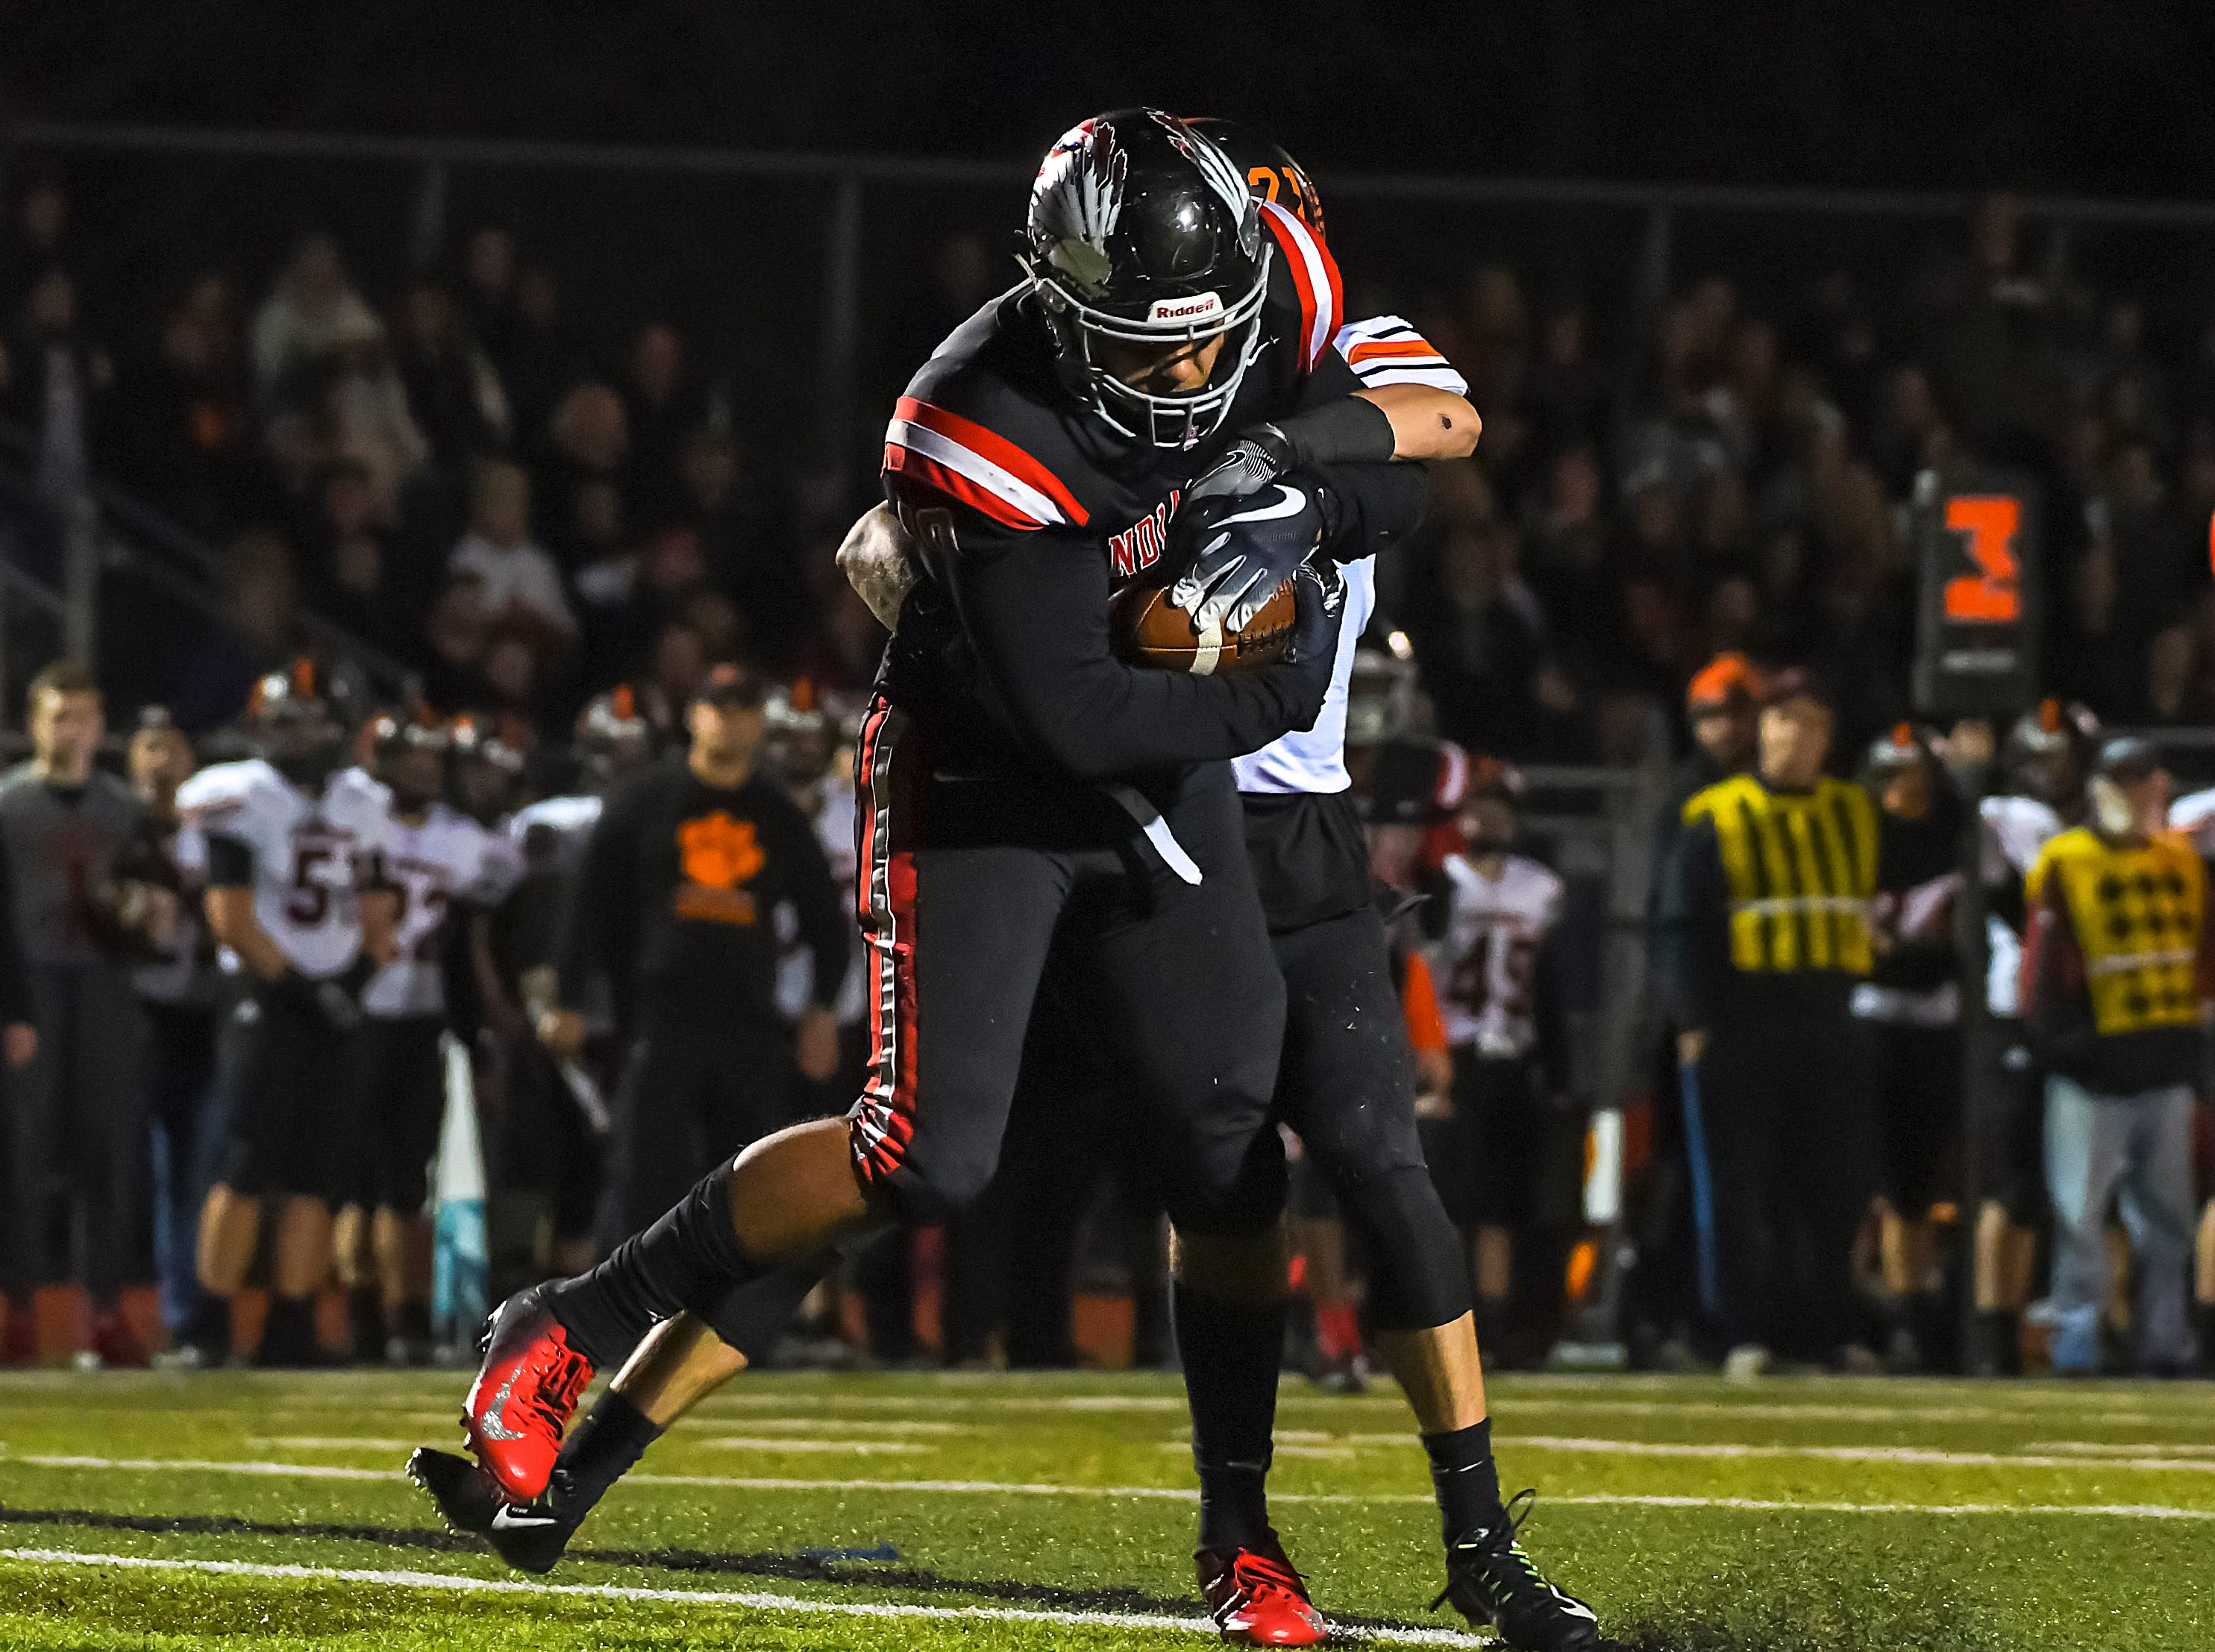 Jack Sichel of Indian Hill catches a pass against Waverly in the OHSAA D4 Region 16 Playoffs at Indian Hill High School, Saturday, Nov. 3, 2018